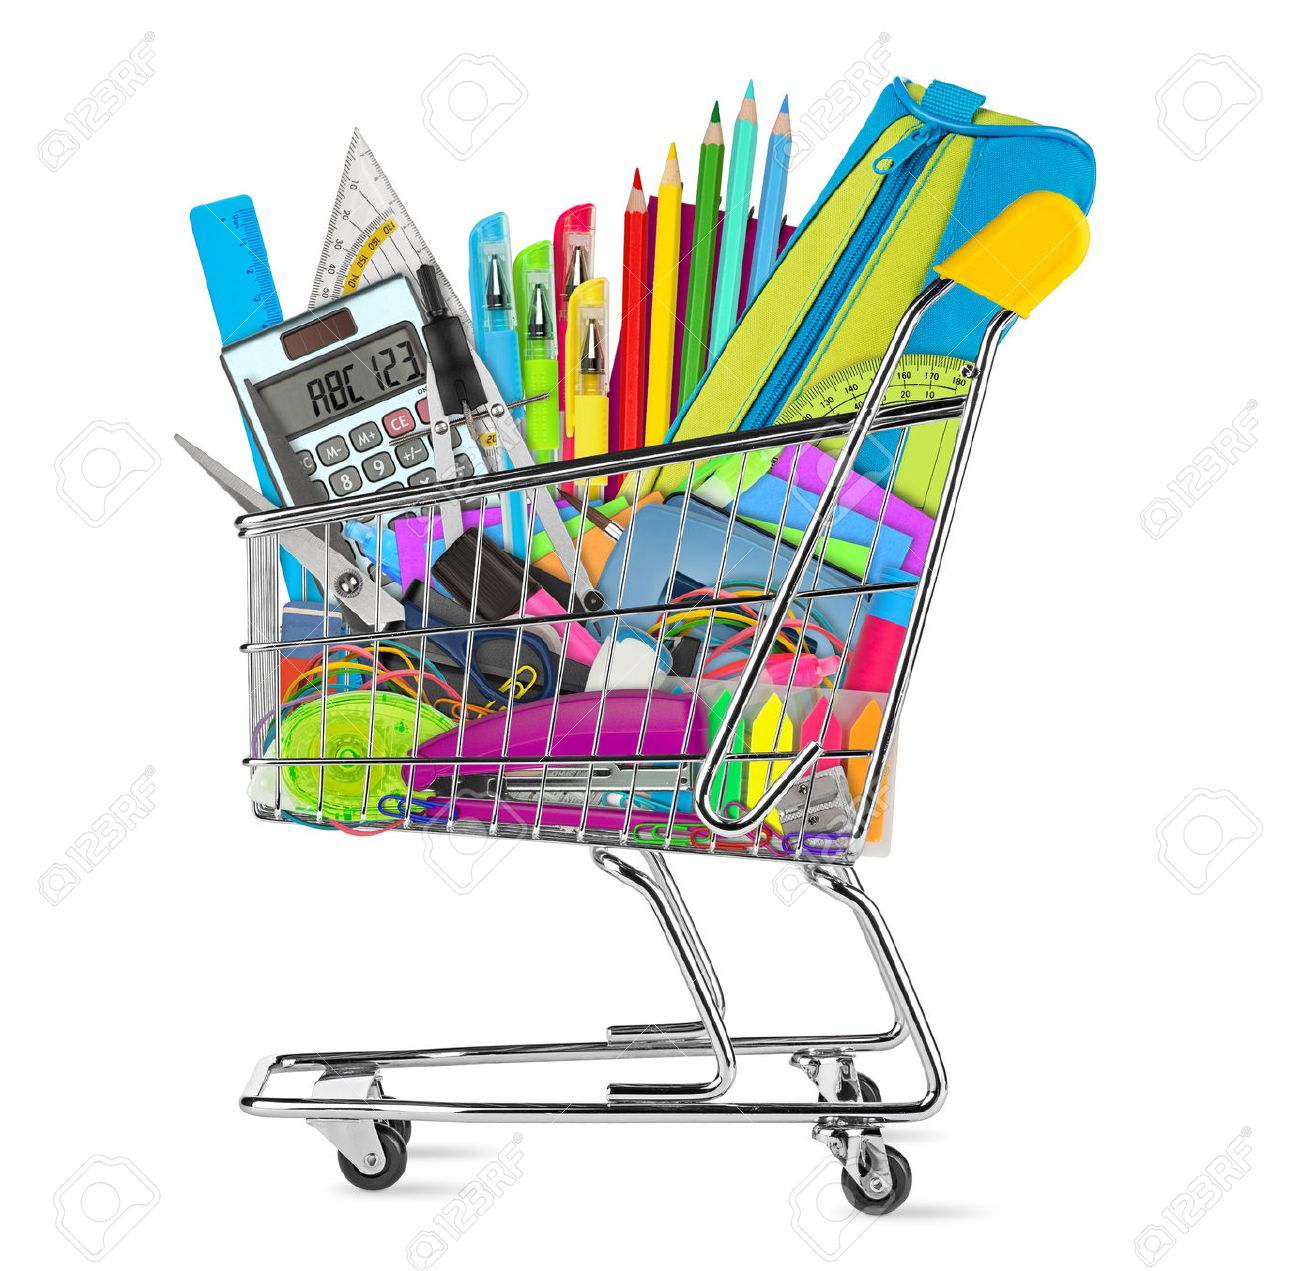 school / office supplies in shopping cart isolated on white background - 44151147